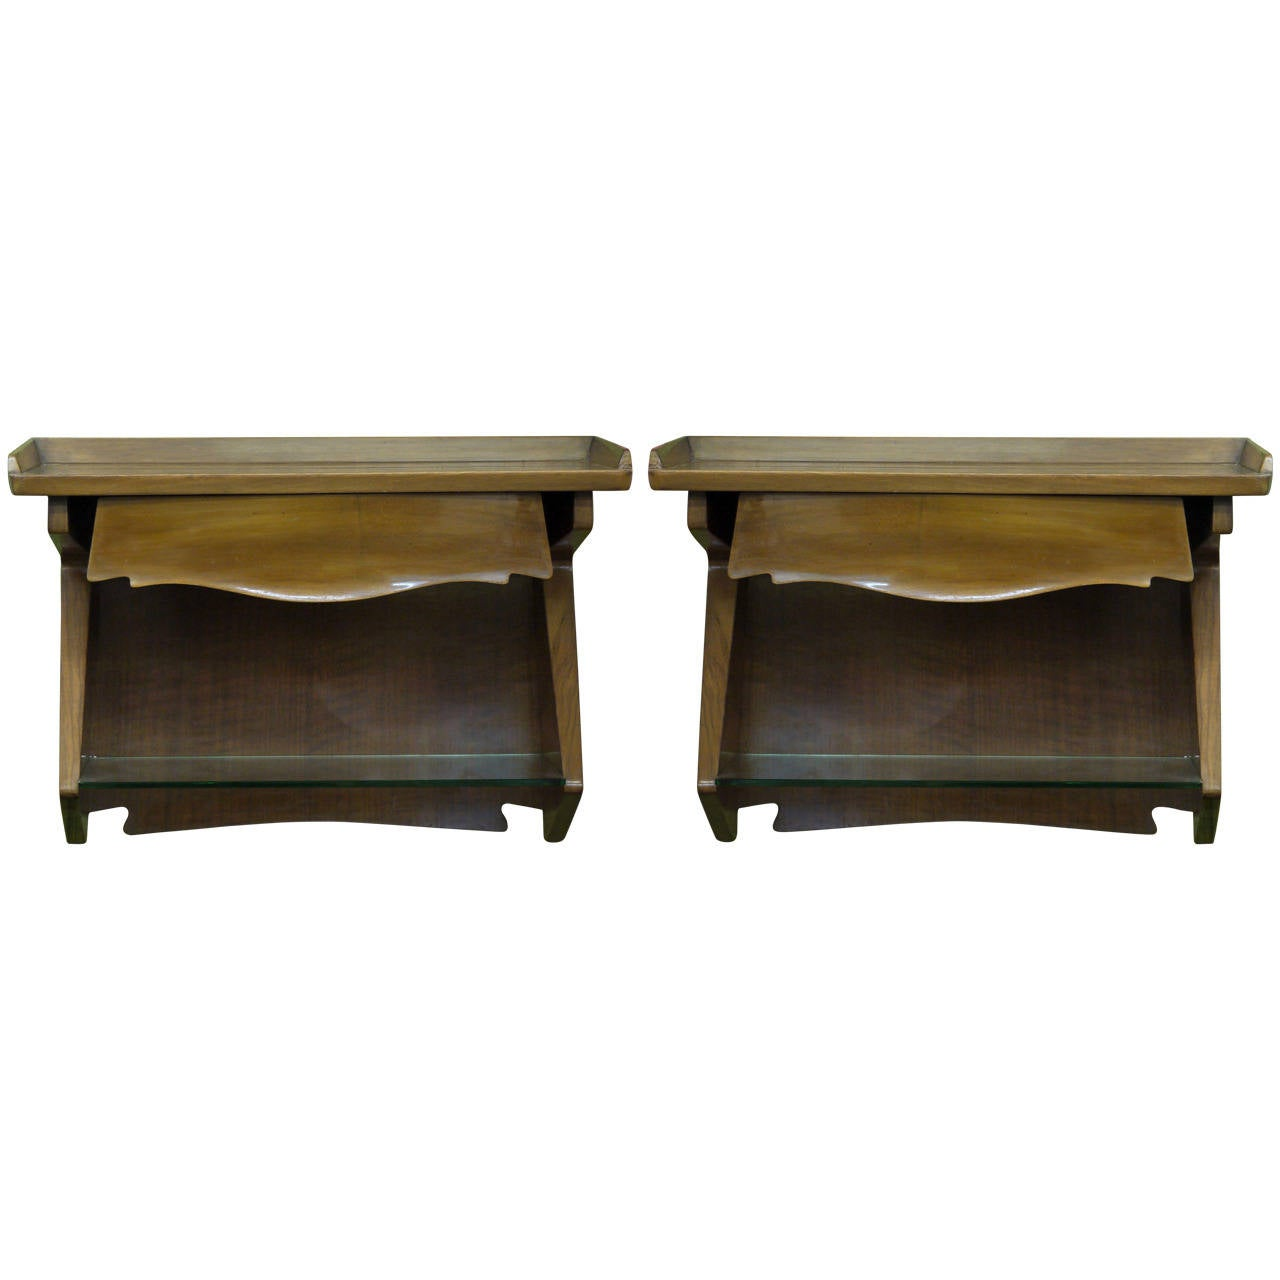 Pair Of Wall Hung Italian Modernist Bedside Tables For